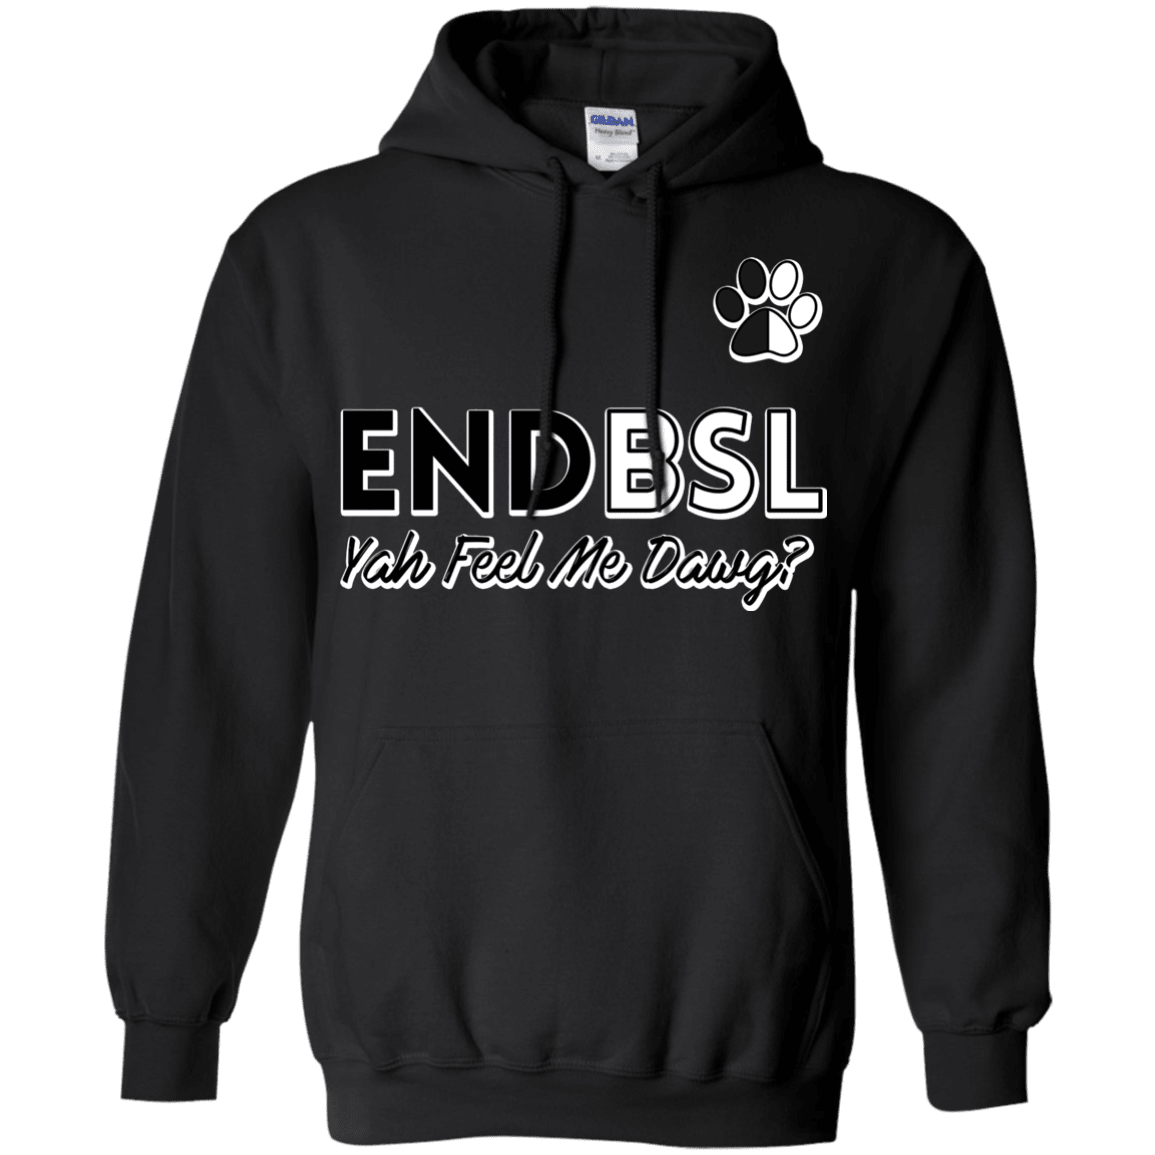 End BSL - G185 Gildan Pullover Hoodie 8 oz. Black Small - Little Pit Shop